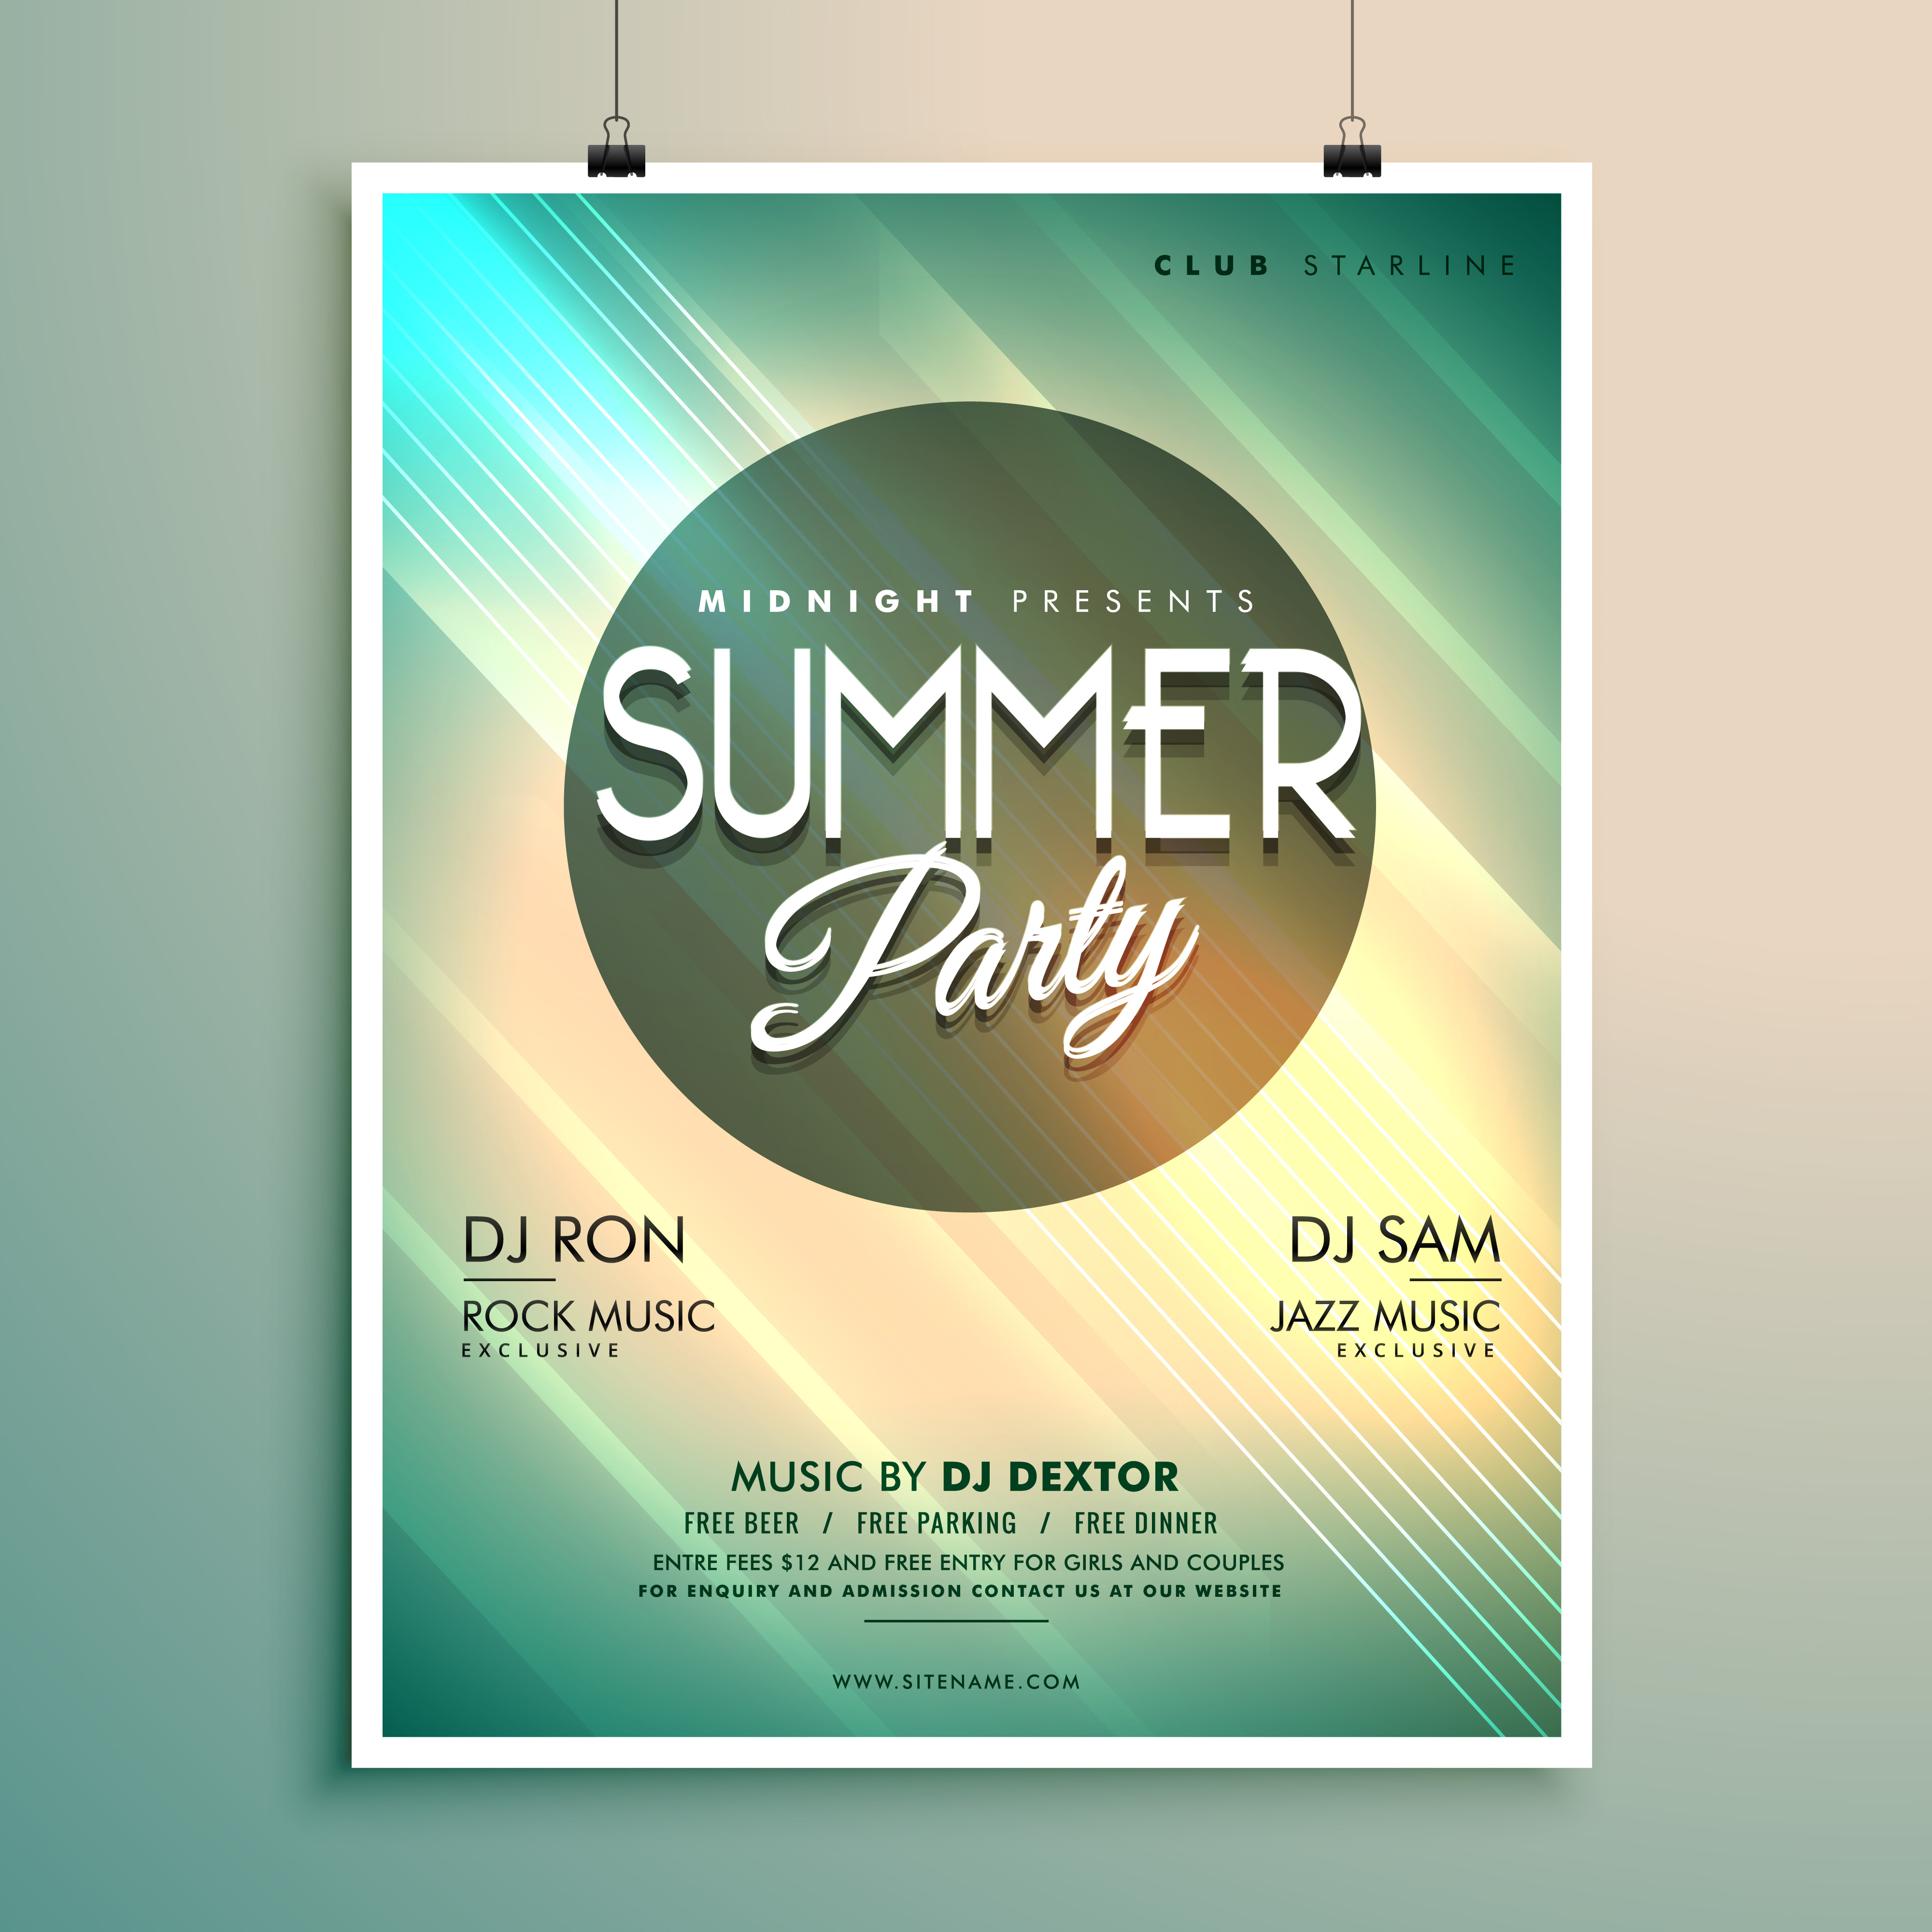 summer music party flyer template with event details - Kostenlose ...